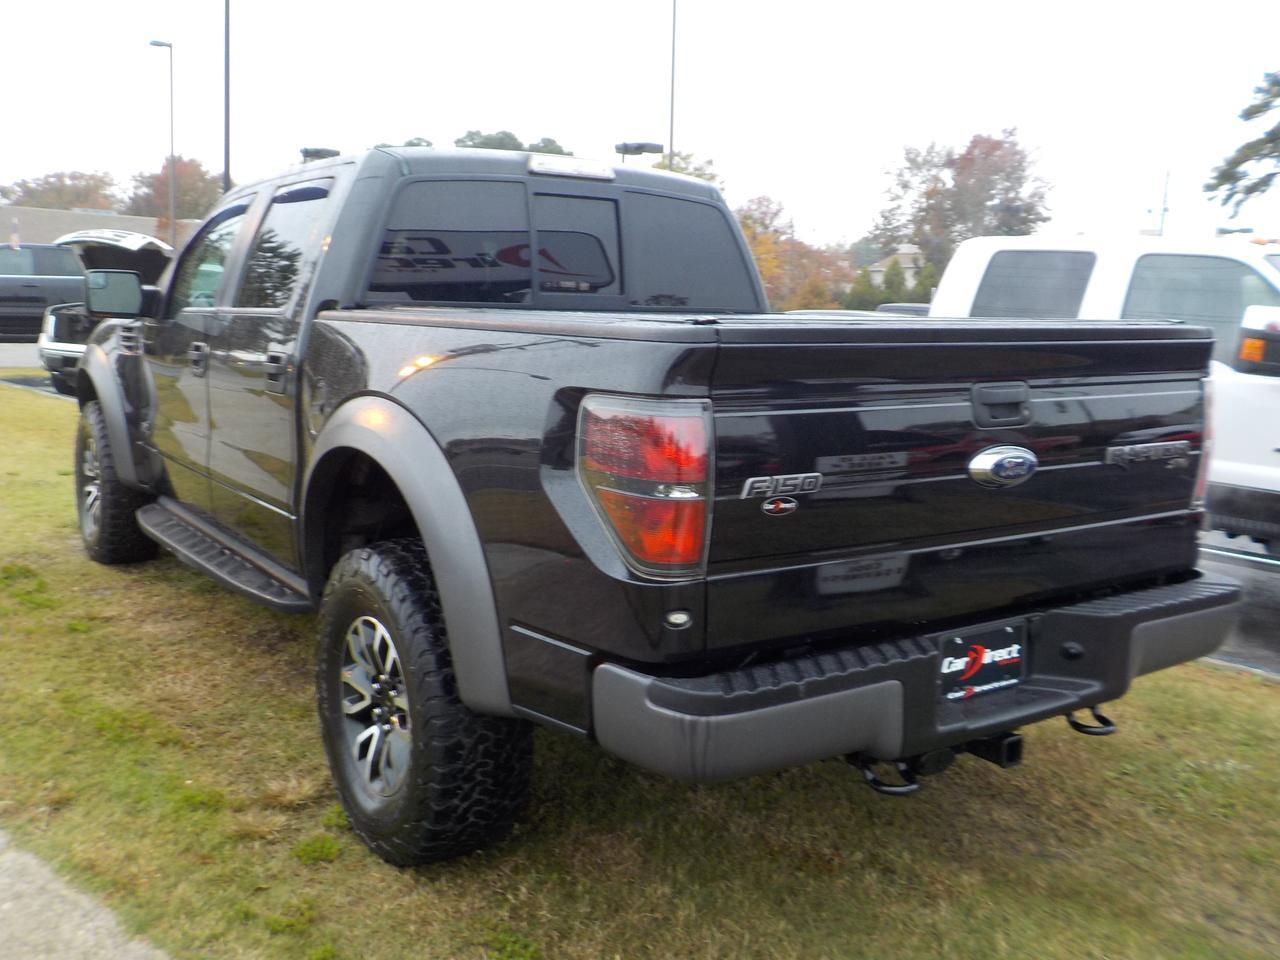 2012 FORD F-150 SVT RAPTOR SUPERCREW 4X4, WARRANTY, LEATHER, SUNROOF, BACKUP CAM, NAV, HEATED/AC SEATS, SONY SOUND! Virginia Beach VA